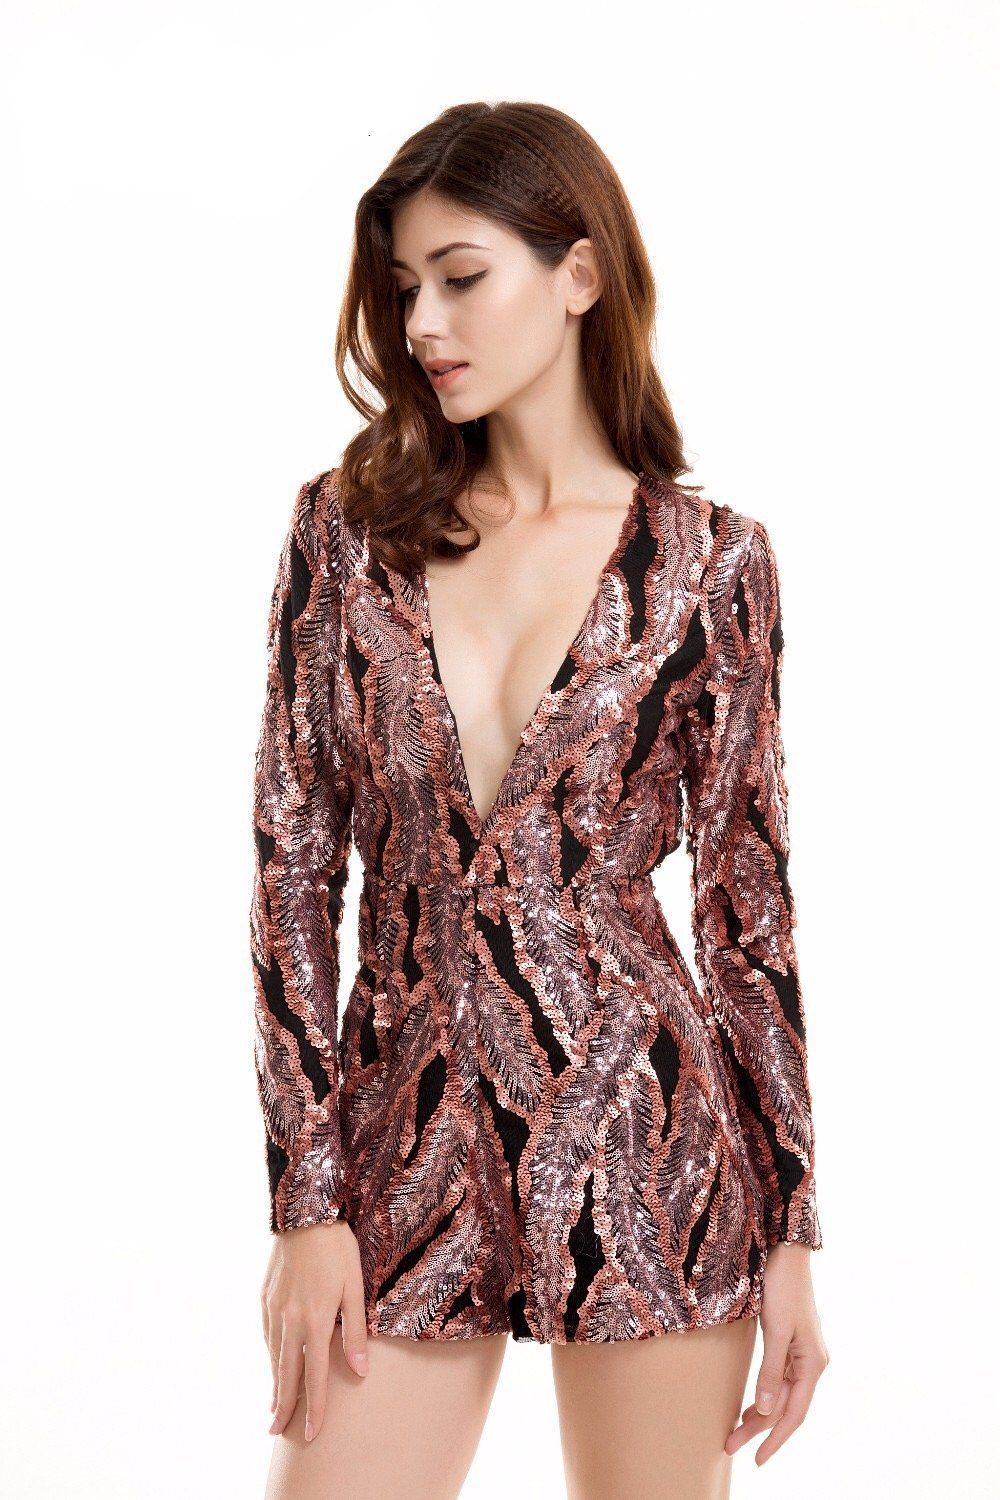 fbdf8d1474 Take the glitz and glam to the next level for your new season nights out  with